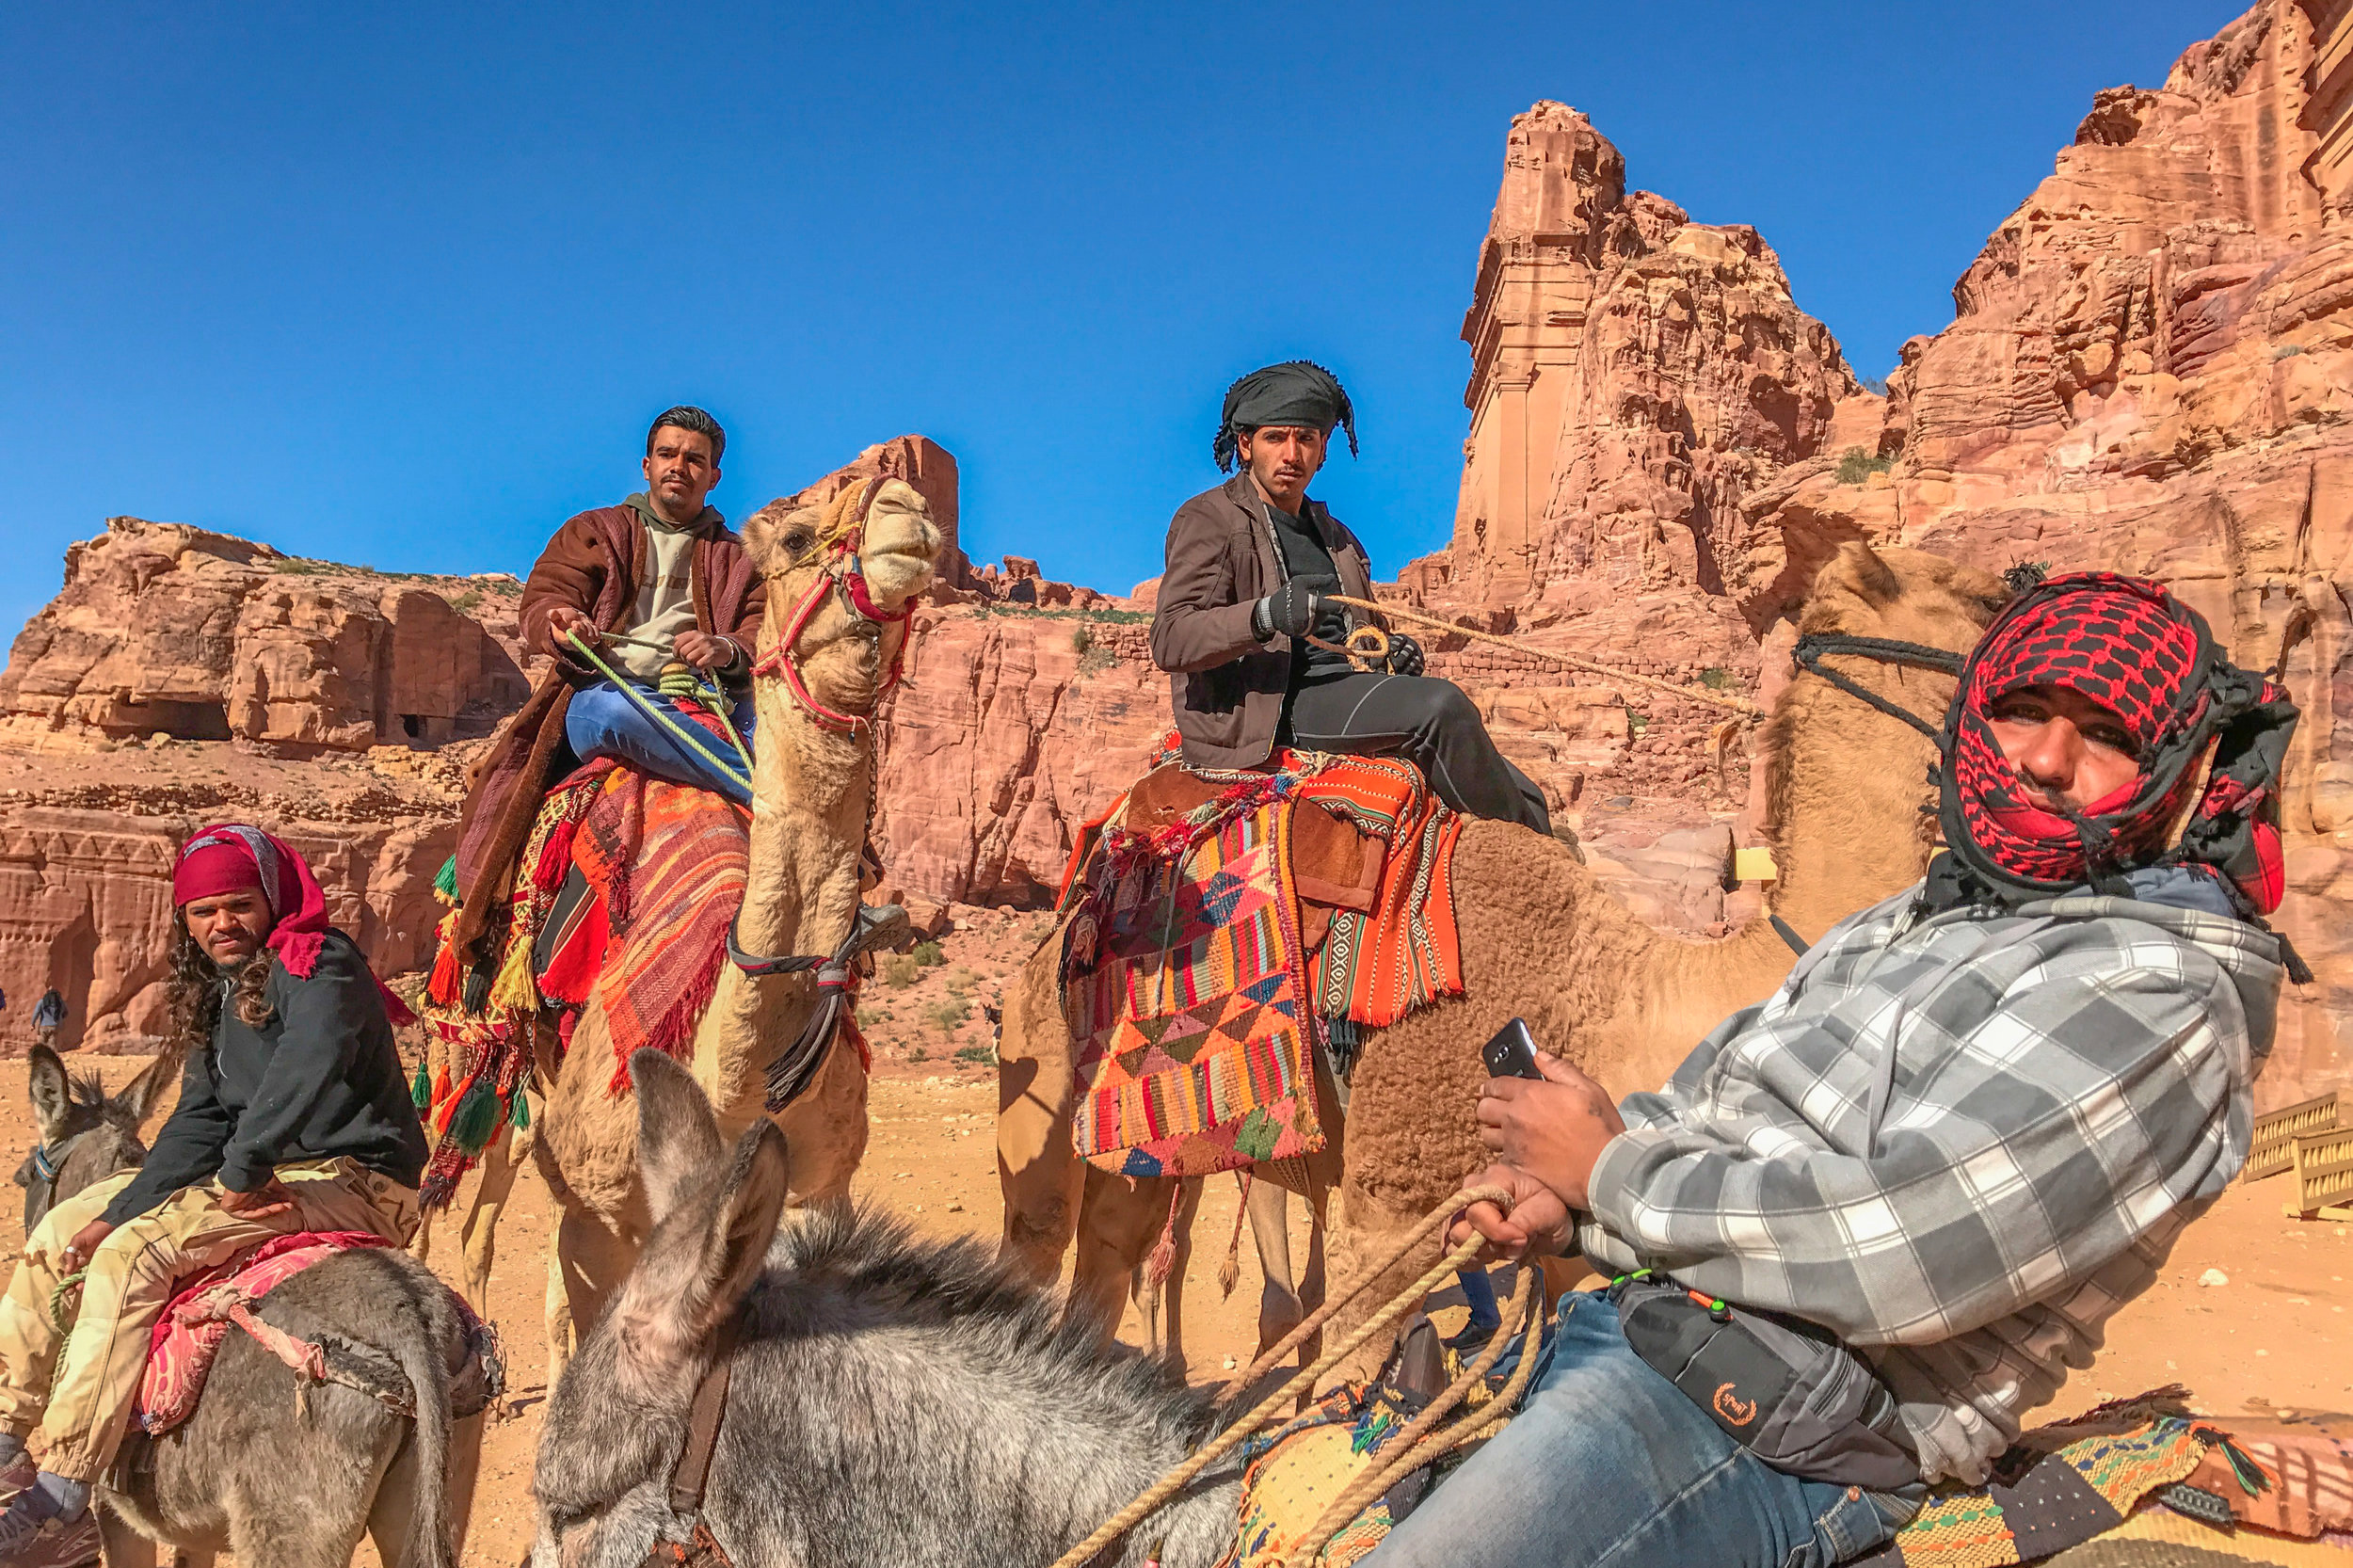 Bedouin camel guides